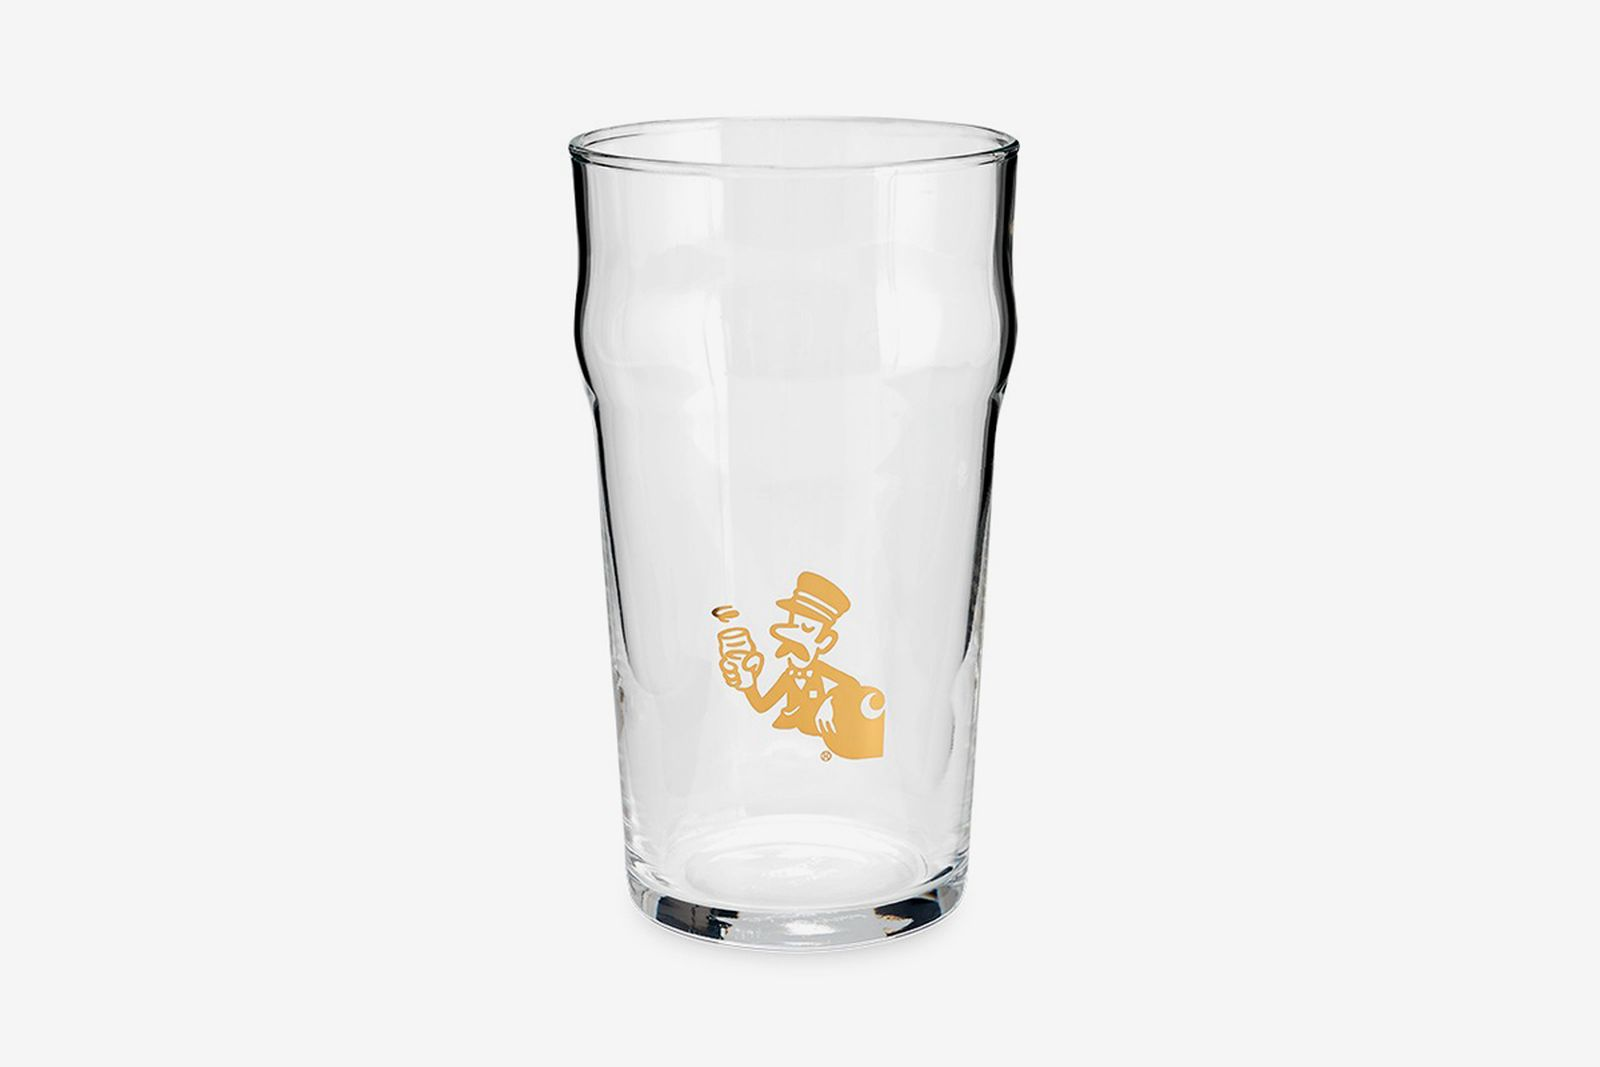 Carhartt WIP pint glass